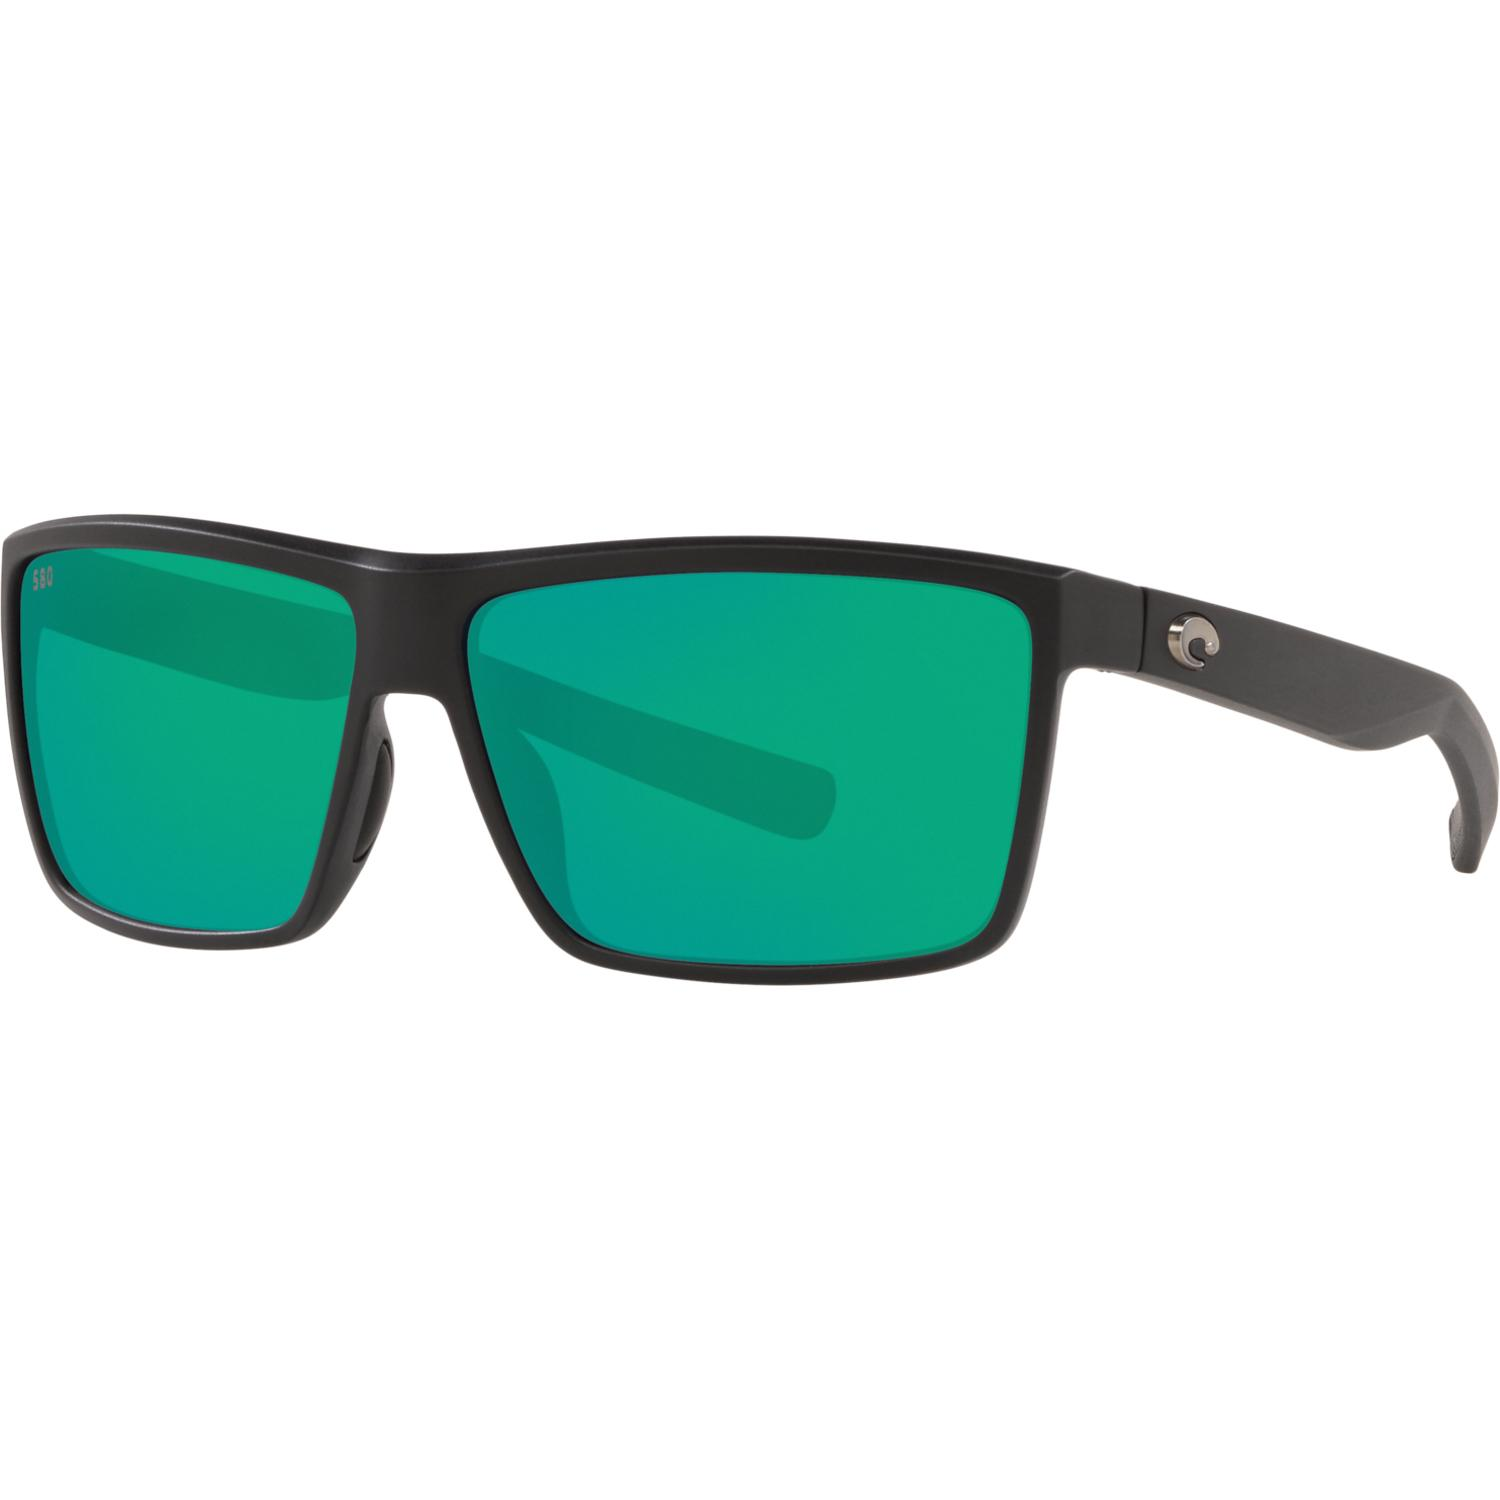 Costa Men's Rinconcito Sunglasses